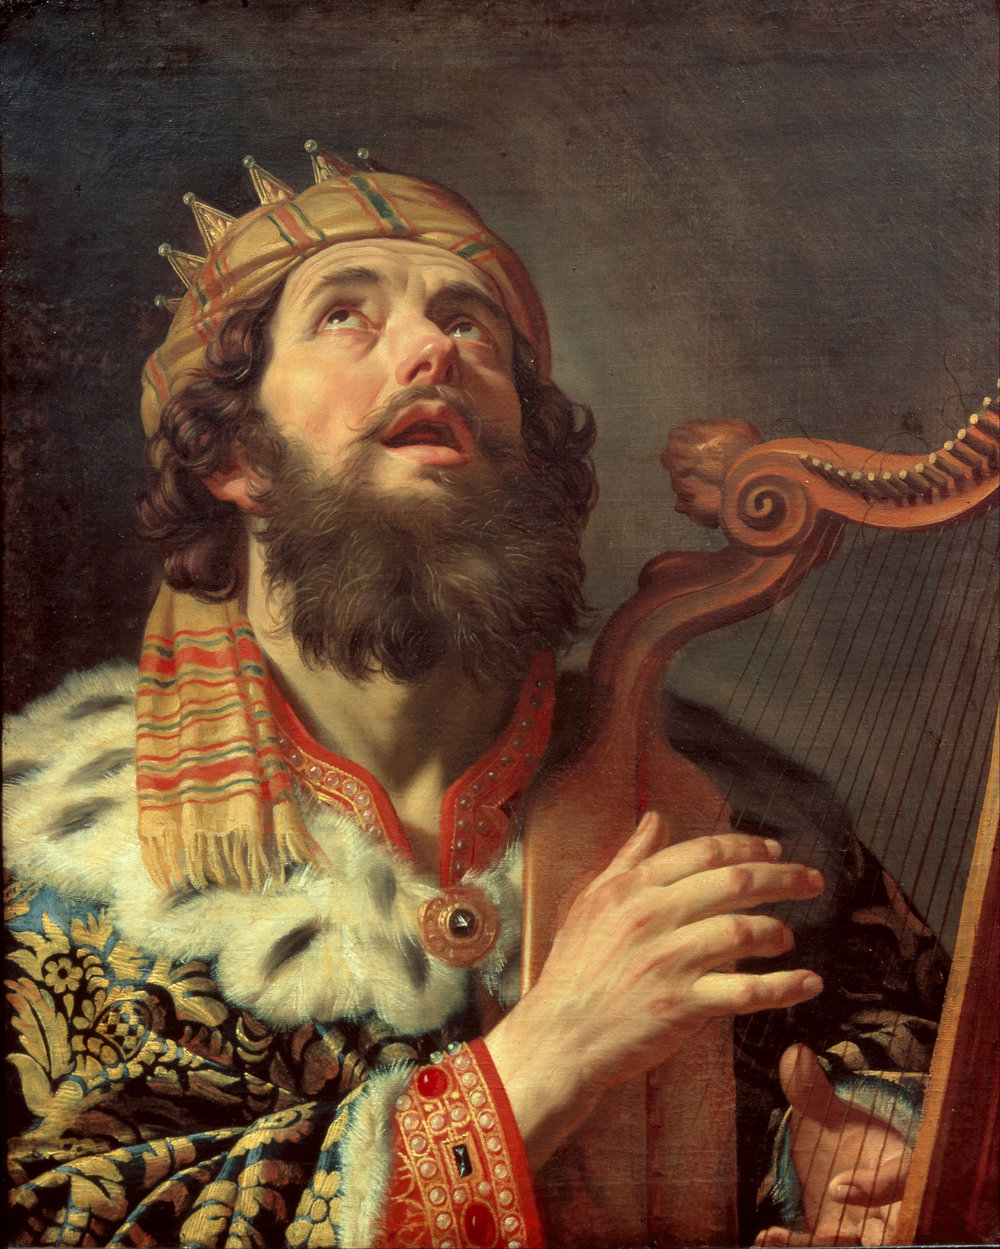 King David Playing the Harp. Artist: Gerard van Honthorst